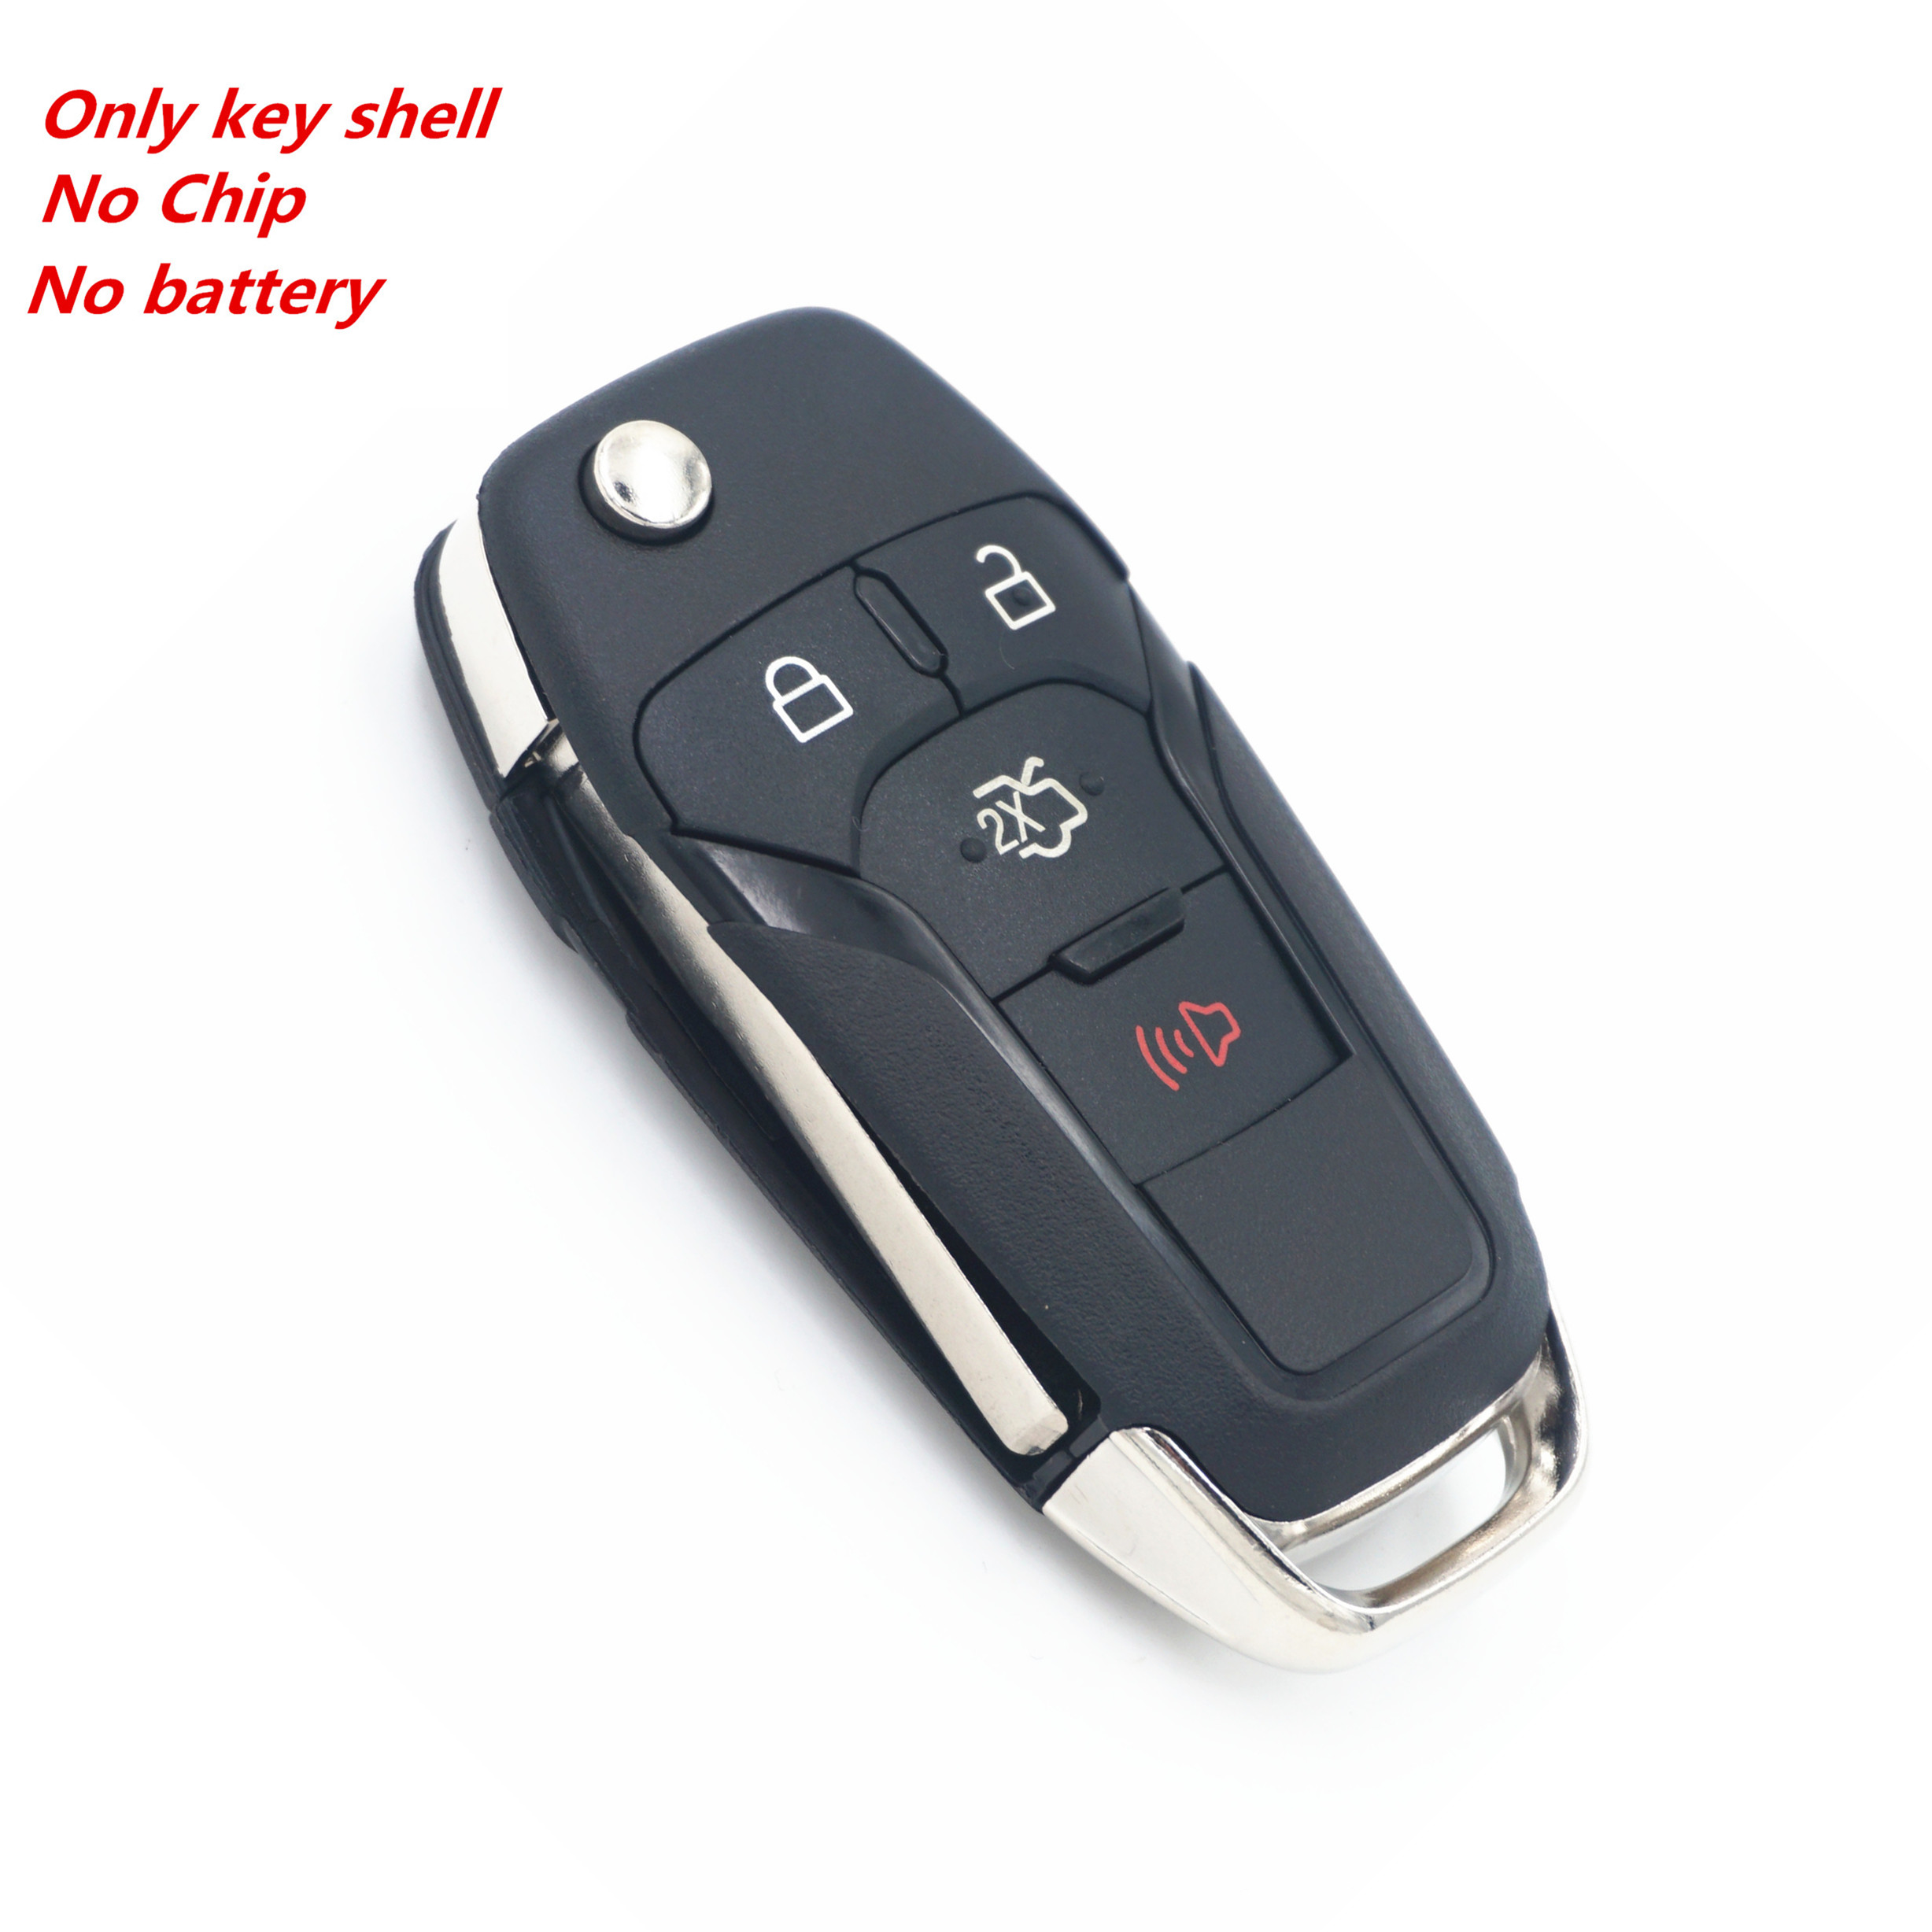 WFMJ 4 Buttons Keyless Remote Flip Floding Smart <font><b>Key</b></font> Case Chain Shell For 2013 2014 <font><b>2015</b></font> 2016 <font><b>Ford</b></font> <font><b>Fusion</b></font> image